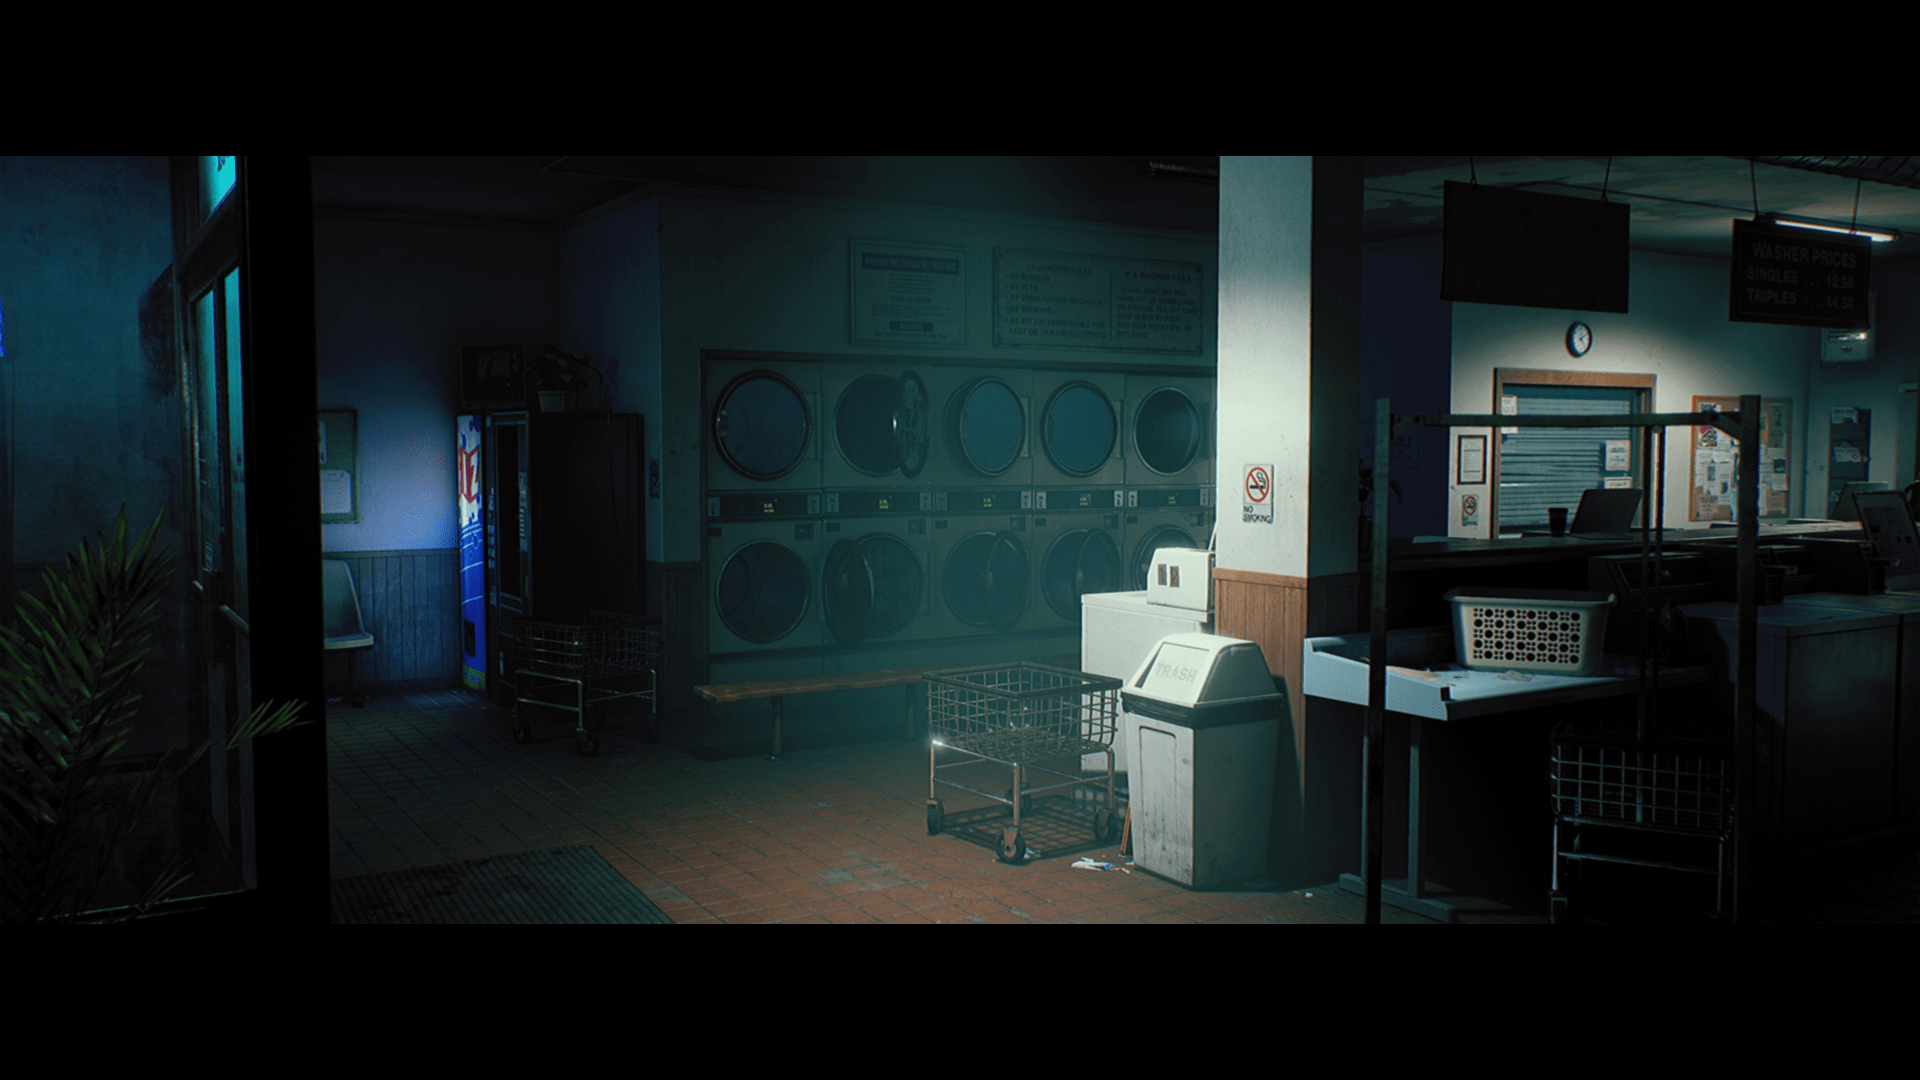 King Wash Laundromat City Scene By Dekogon Studios In